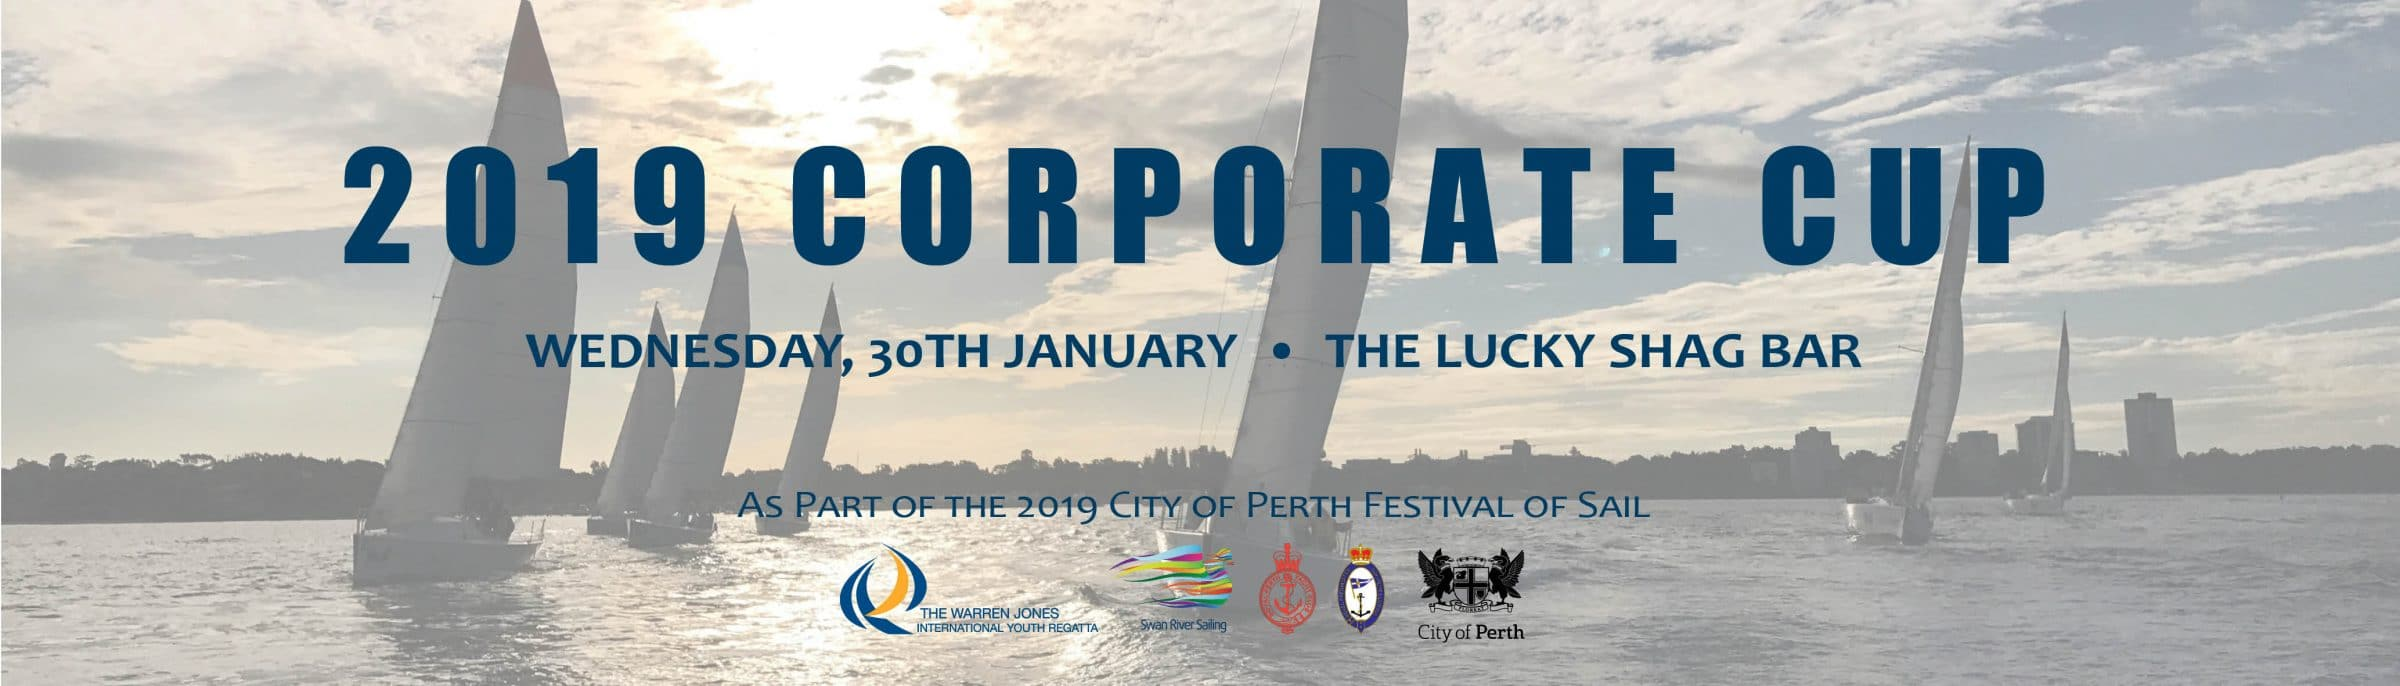 corporate cup networking sailing event in perth waters right near the CBD 2019